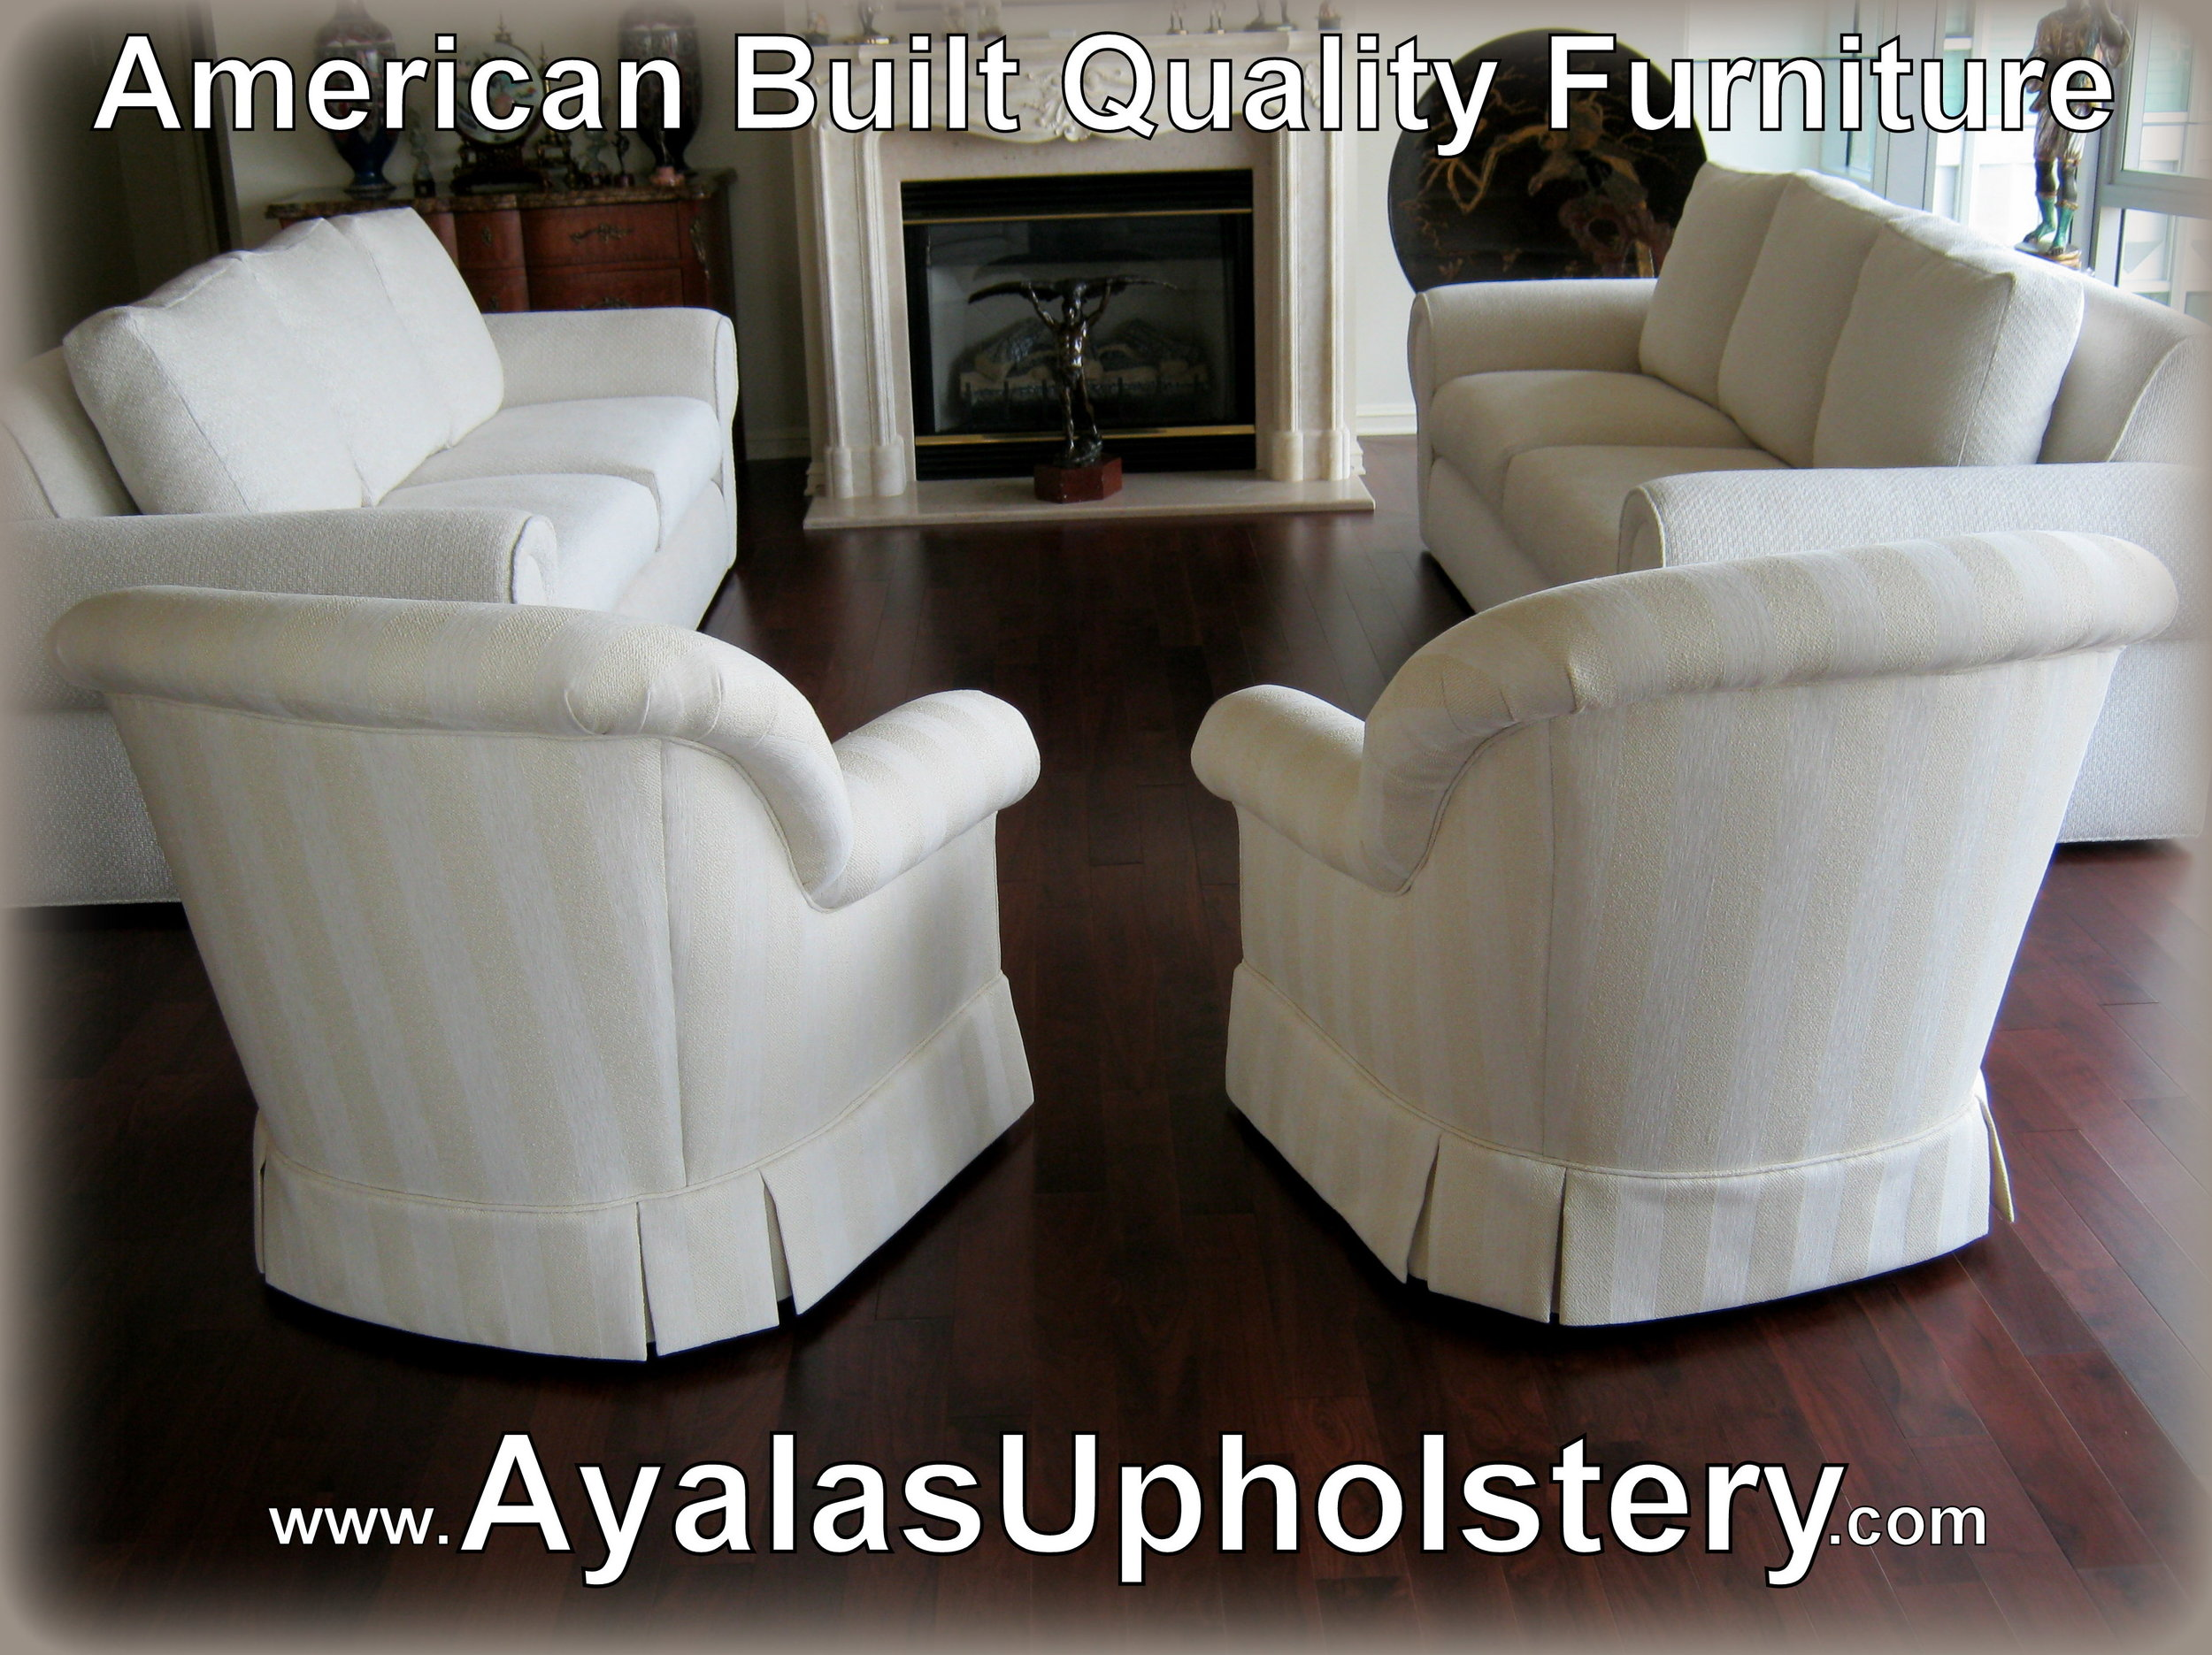 6. white swivel club chairs and 2 matching sofa by Ayalas upholstery.jpg